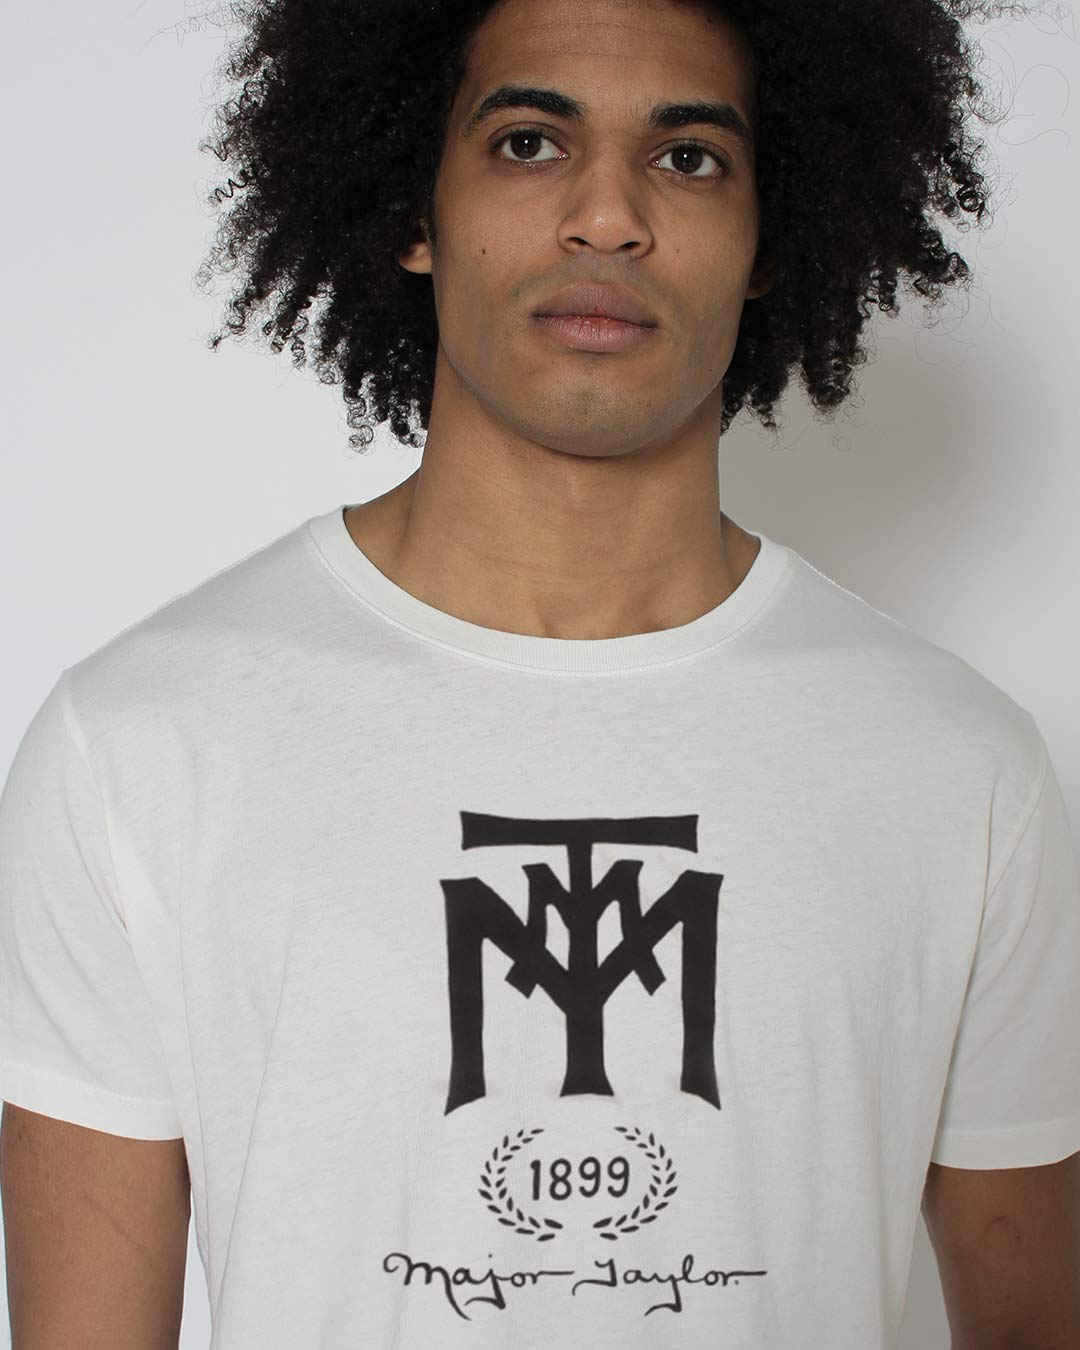 BHT - Major Taylor Signature Tee - Roots of Inc dba Roots of Fight